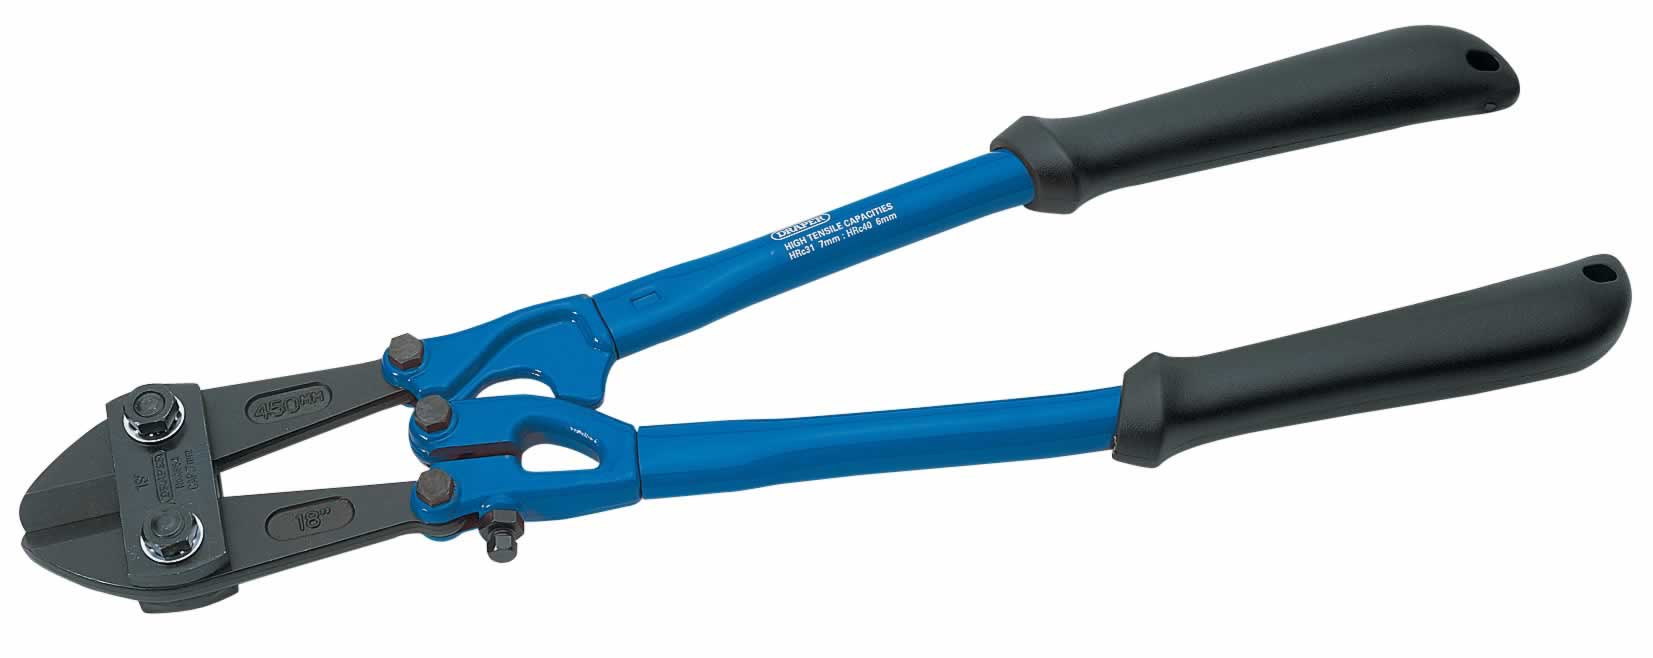 EXPERT 450MM HEAVY DUTY CENTRE CUT BOLT CUTTER